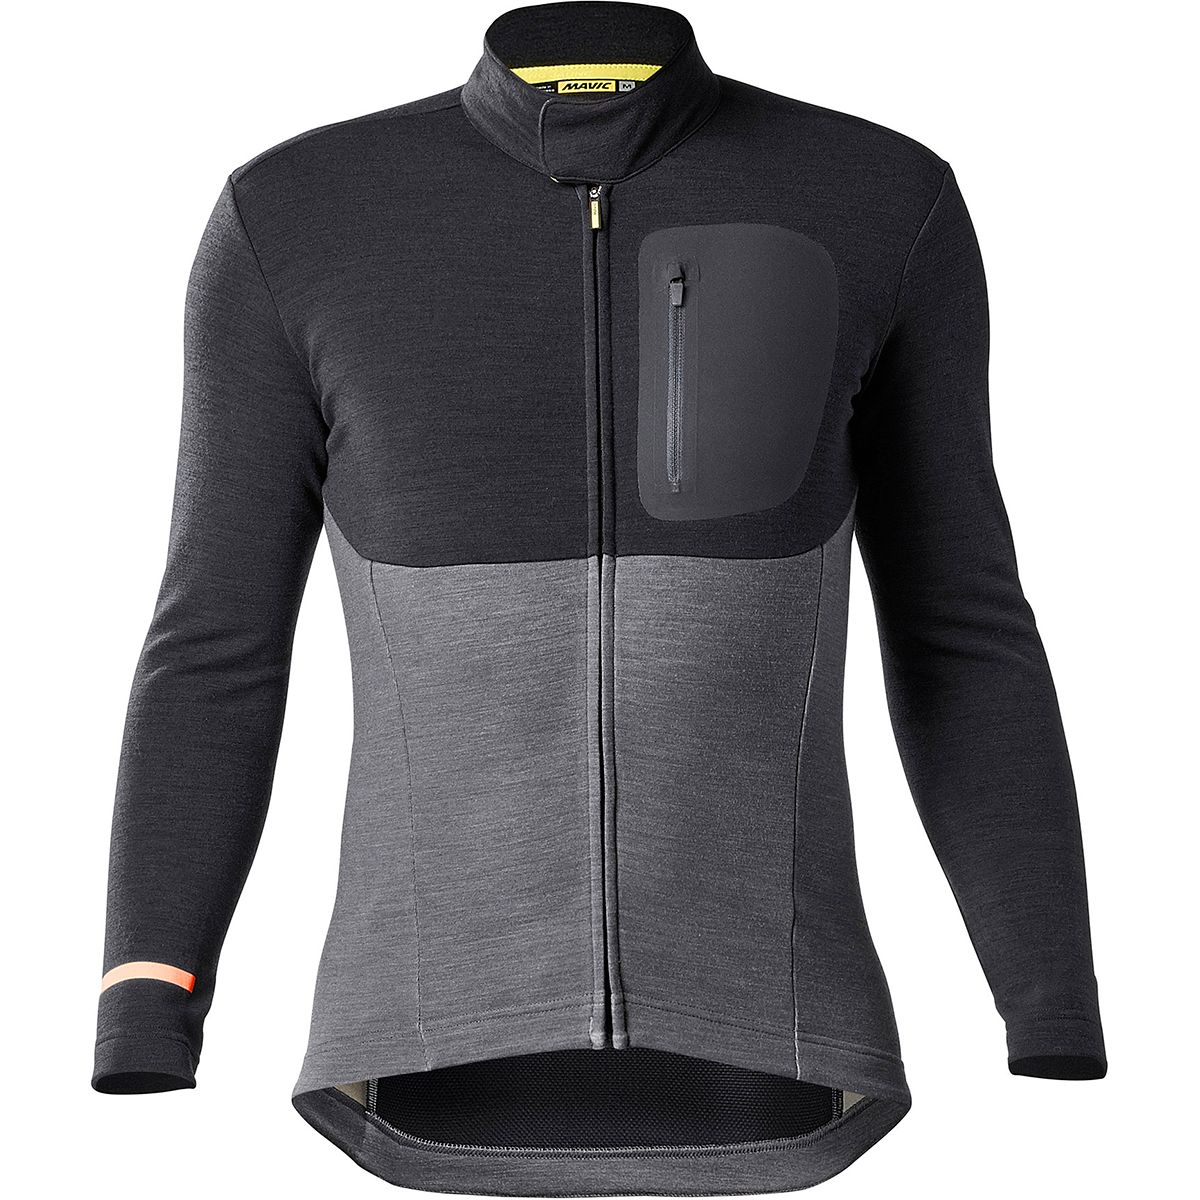 ALLROAD THERMO maillot gravel à manches longues